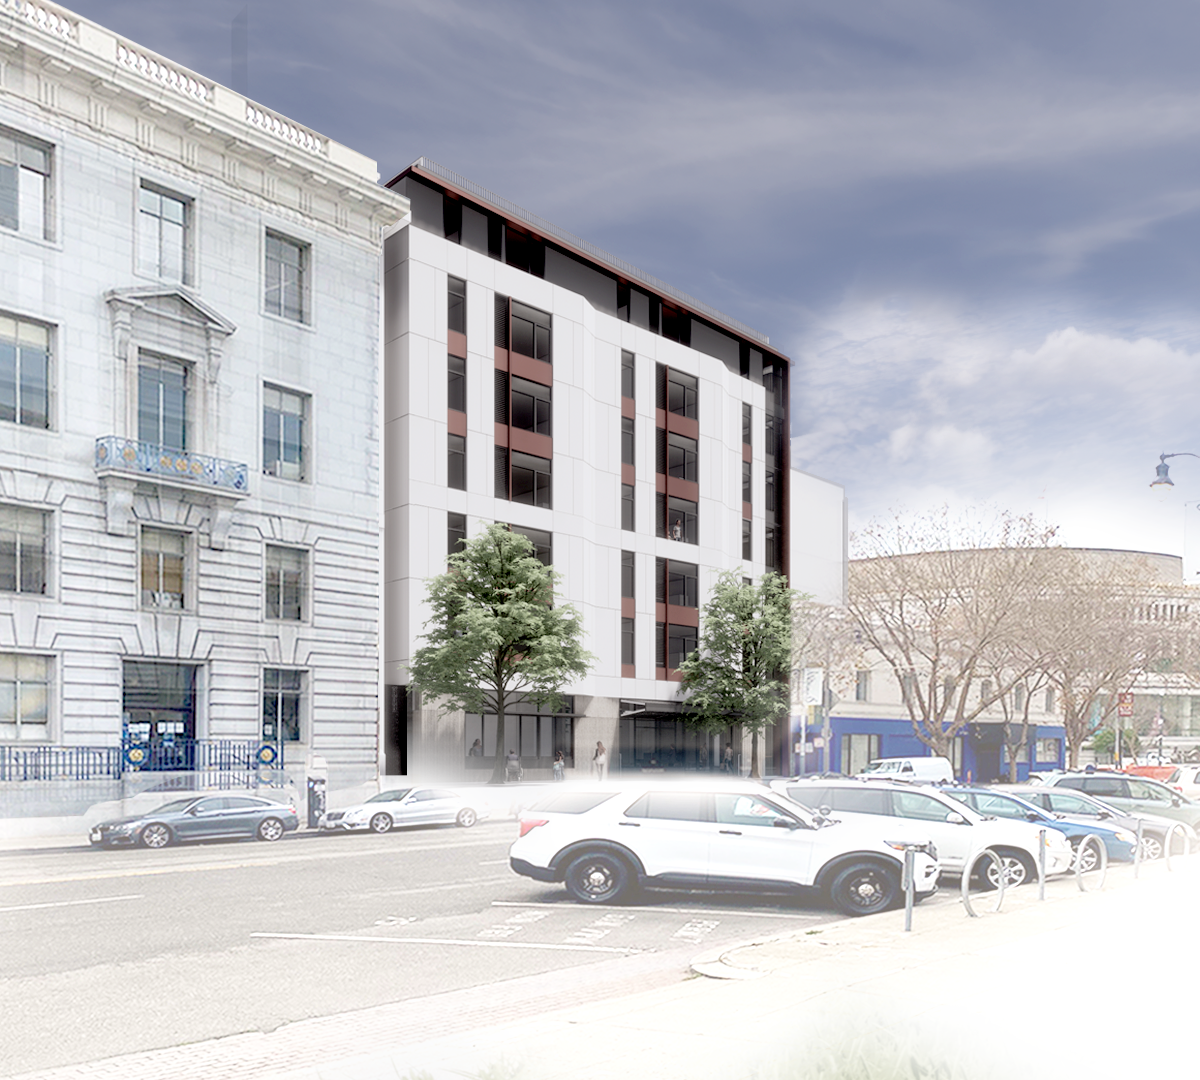 A rendering of a rectangular building on Grove Street in San Francisco with cars and street lights in the foreground and buildings, the symphony building, in the background.